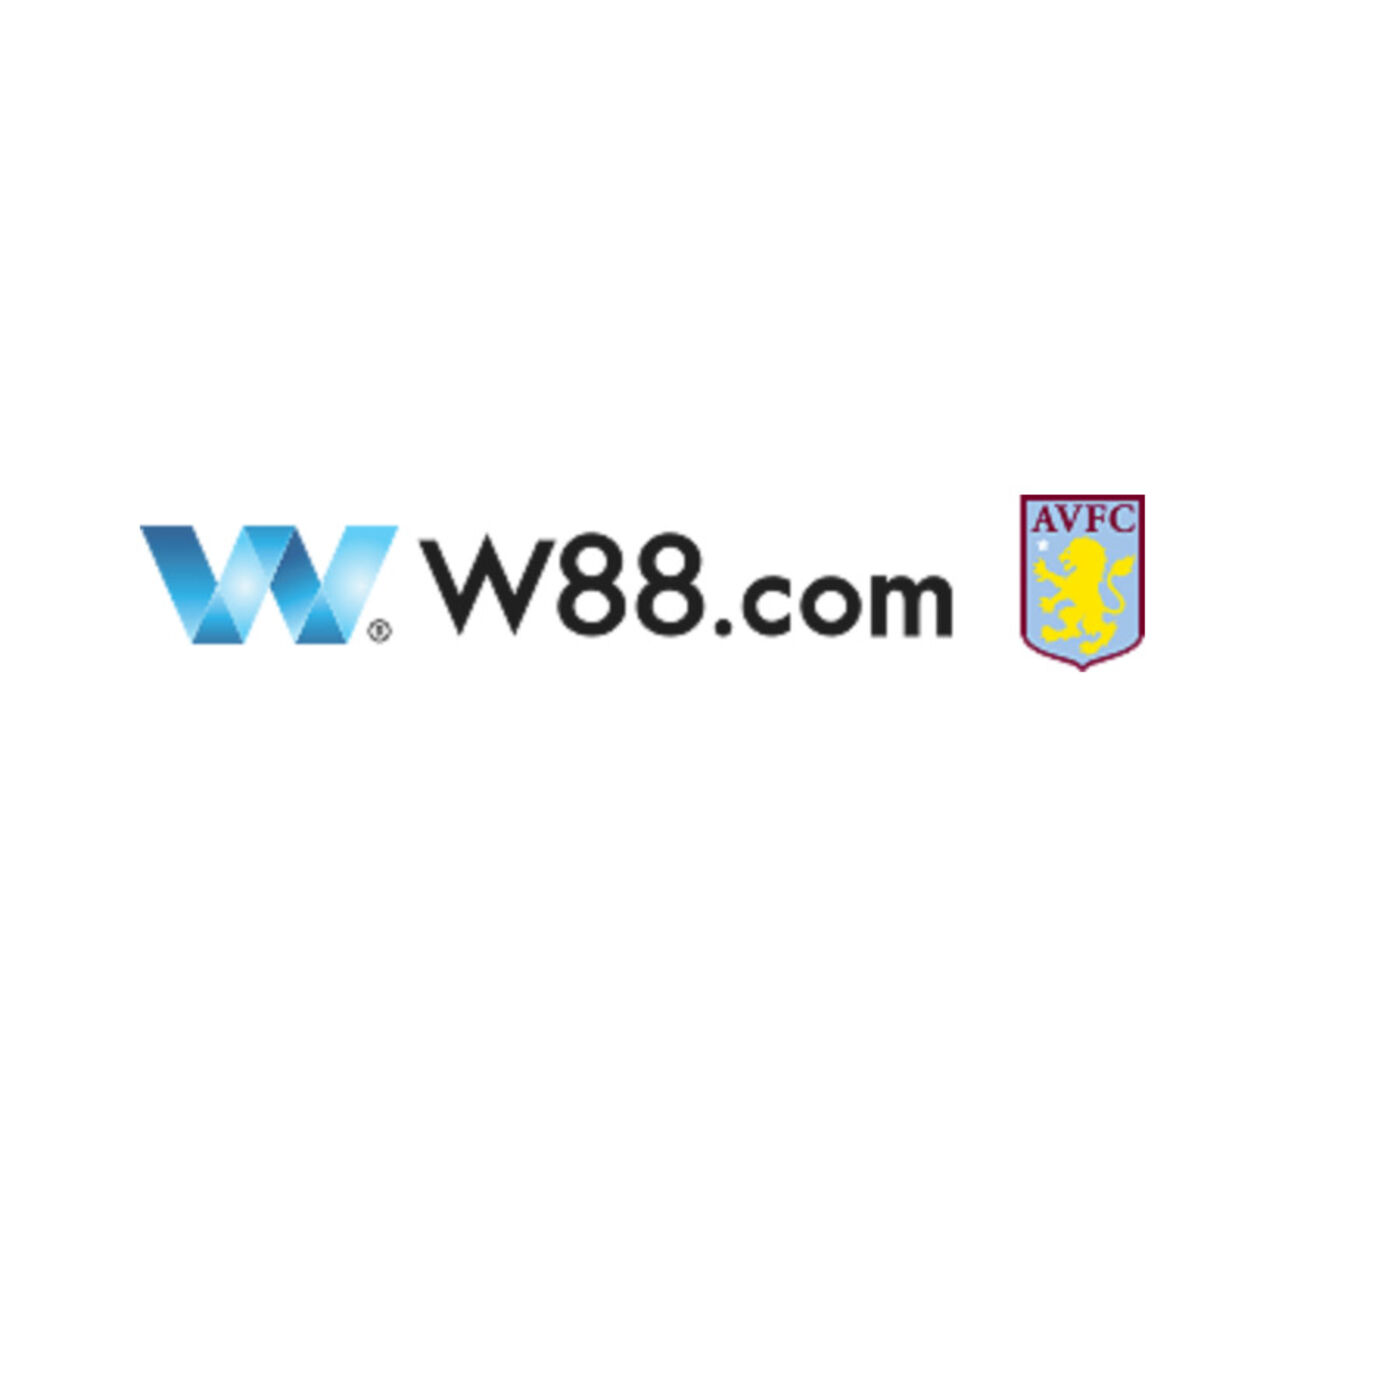 How to register for W88 at W88od.com